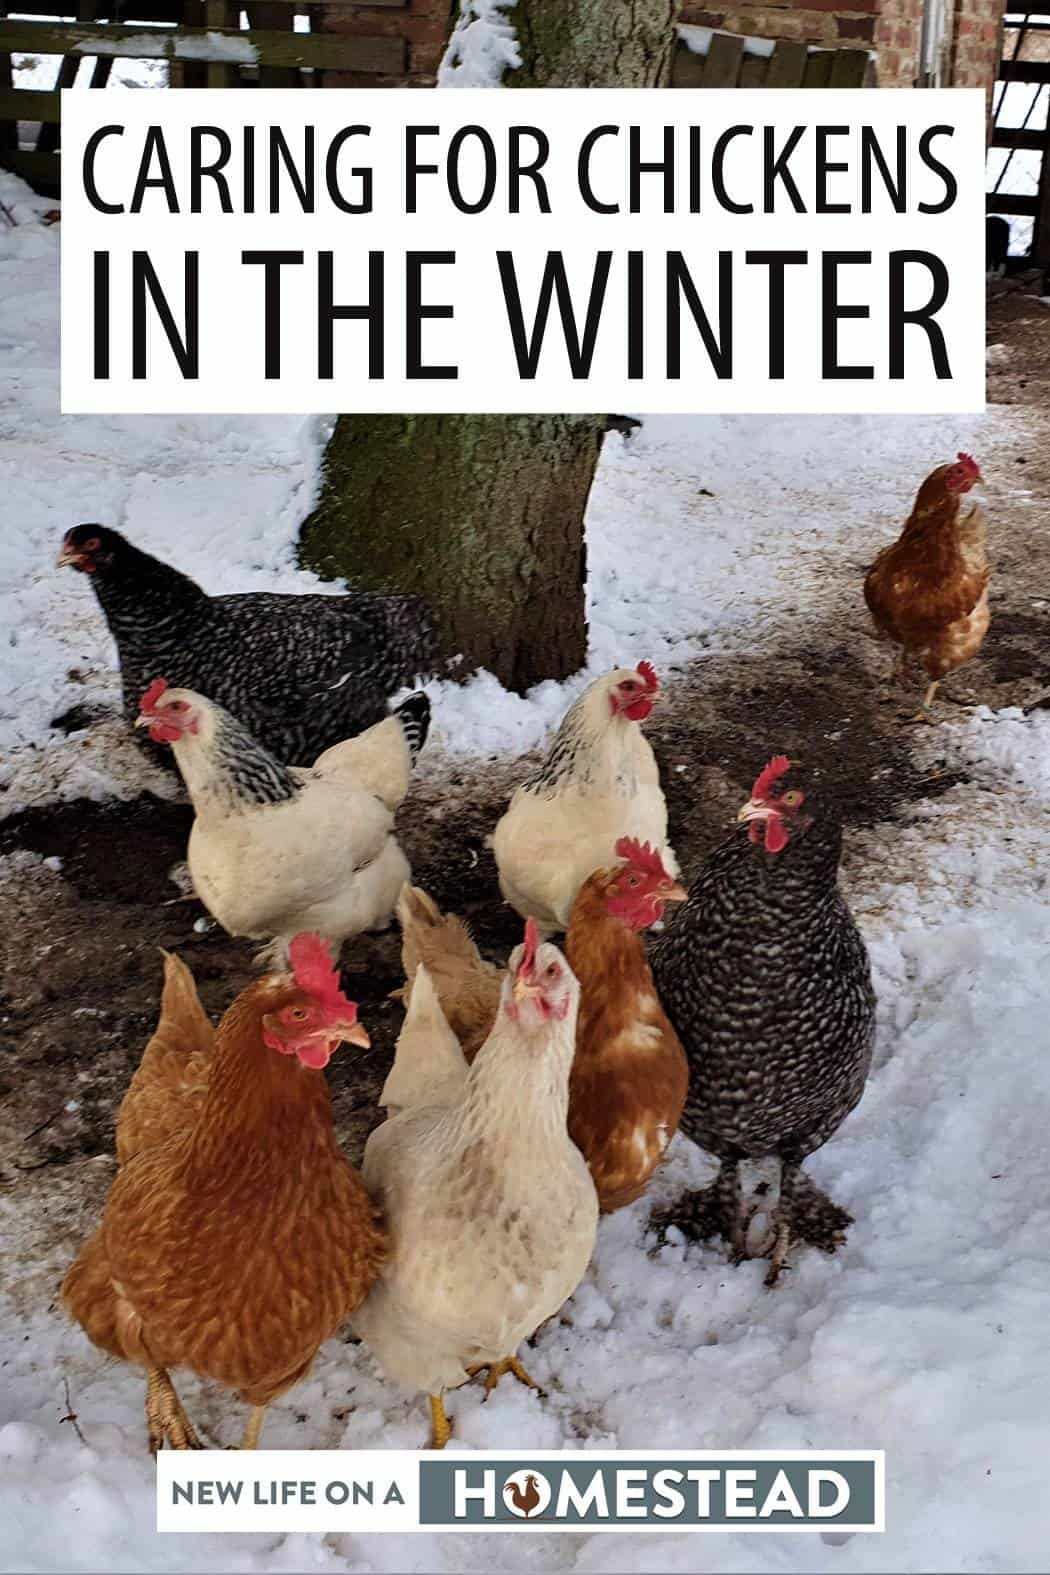 winter chickens care pinterest image